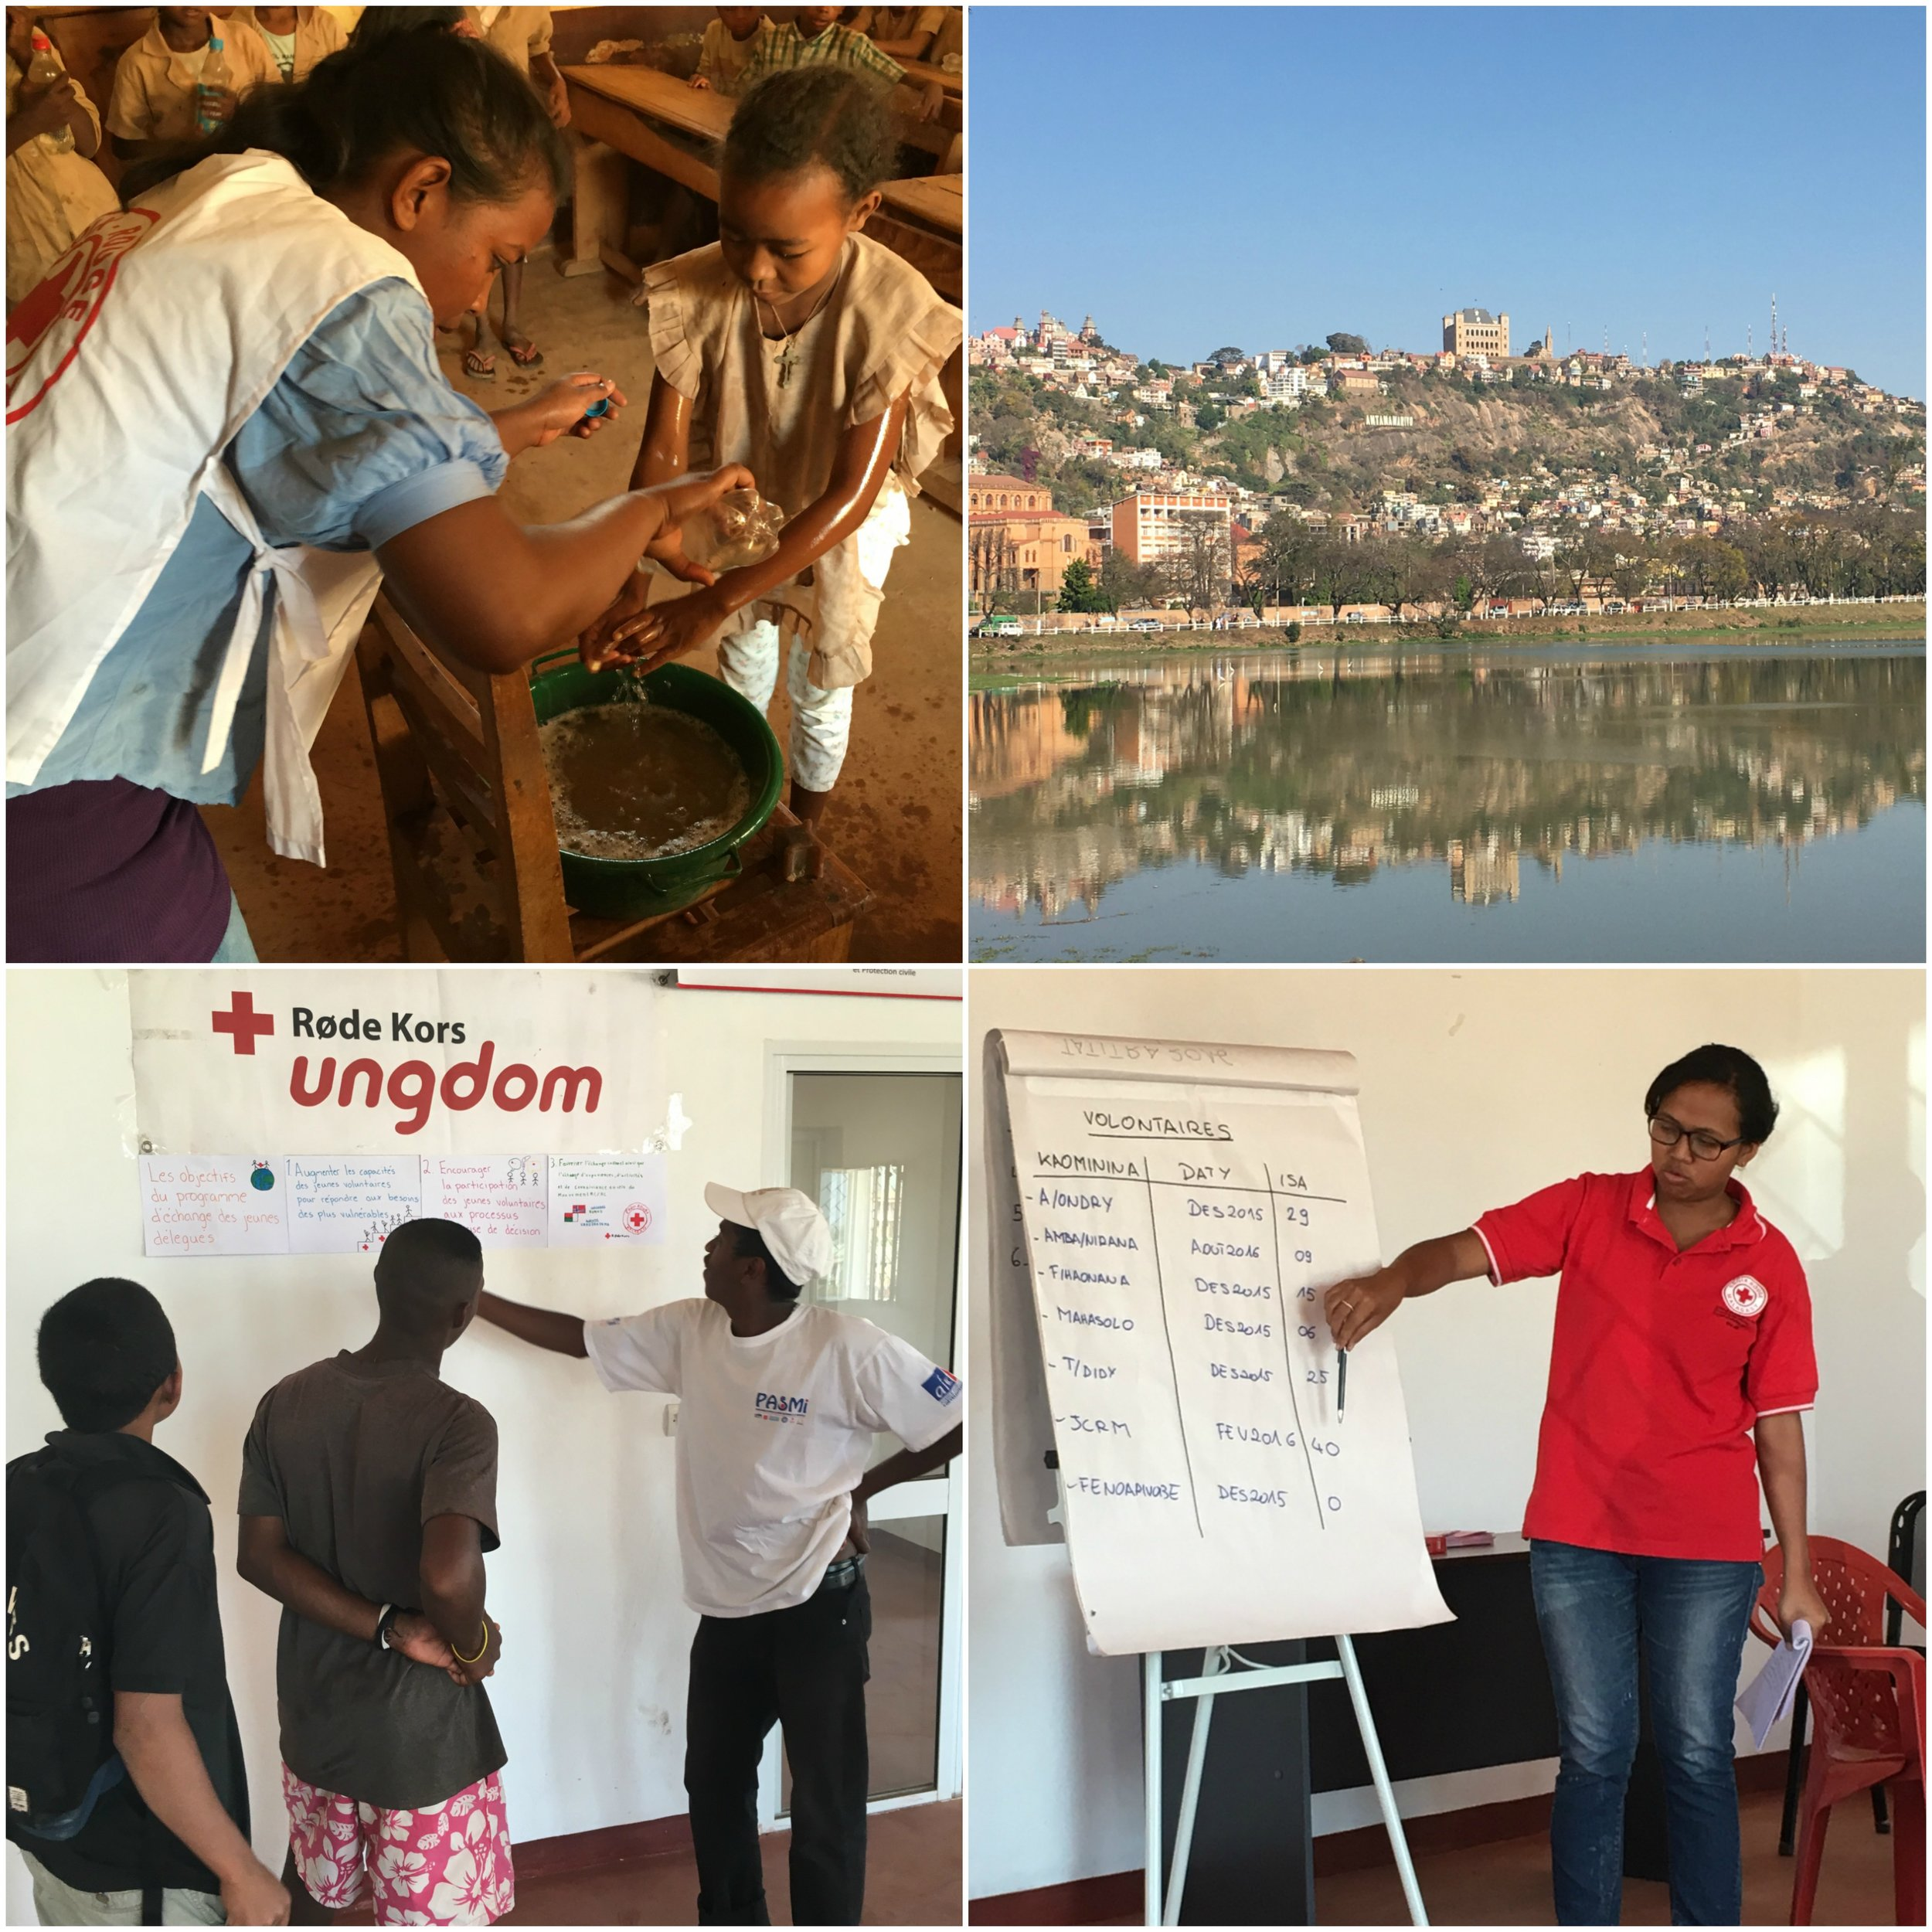 Top left: Celebration of Global Handwashing Day 15. October. Top right: View ofthe capital, Antananarivo. Bottom left: Youth volunteers discussing the objectives of Youth Delegate Exchange Programme. Bottom right: The Regional Red Cross coordinator talking about the number of volunteers in the region at the General Assembly.